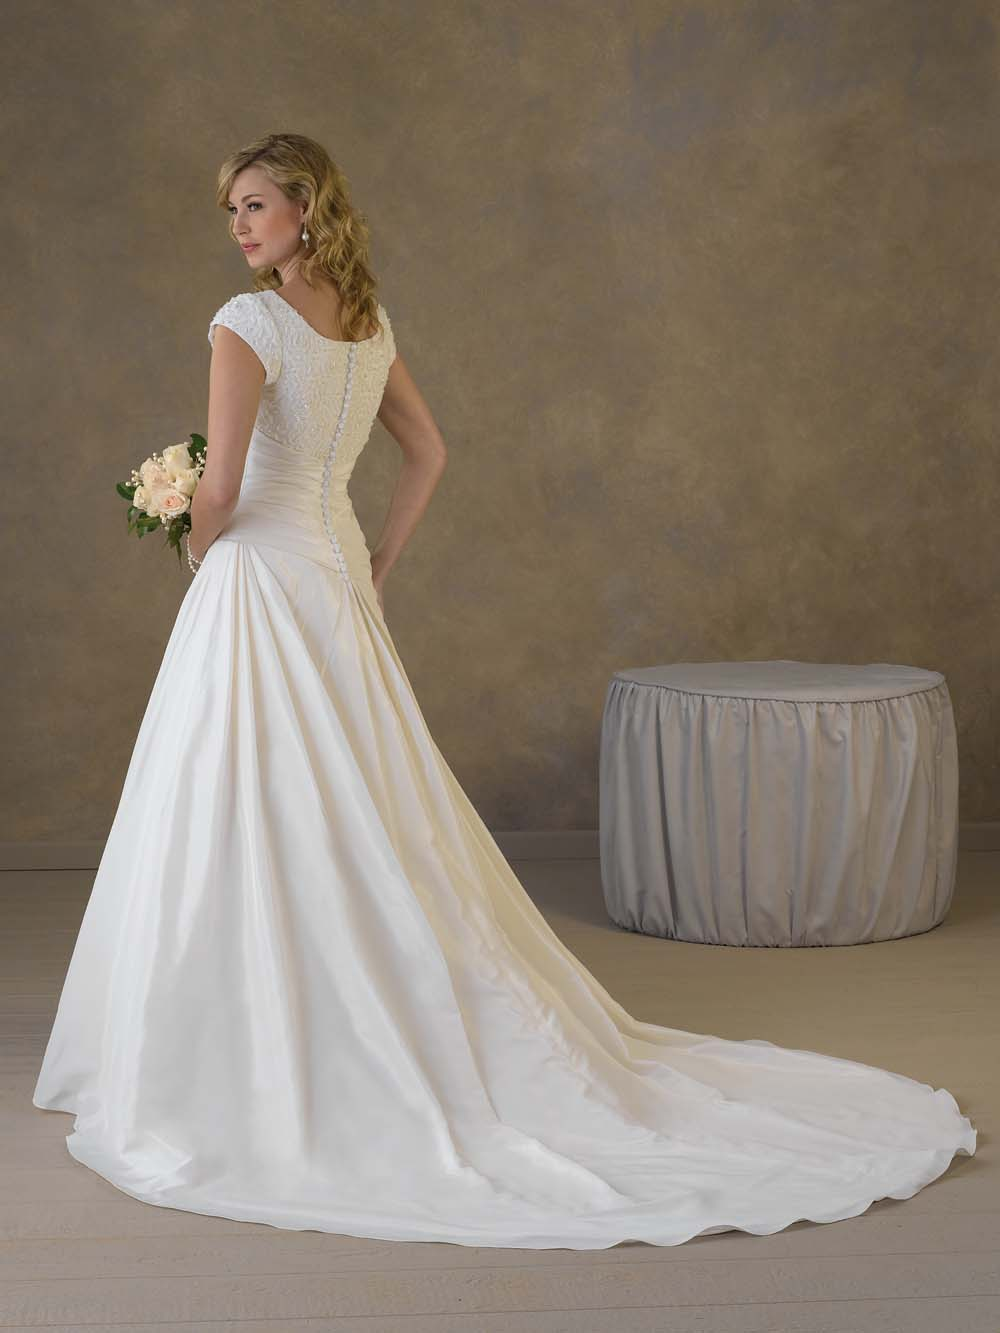 How to select the proper empire waist wedding dresses for Wedding dress with waistband